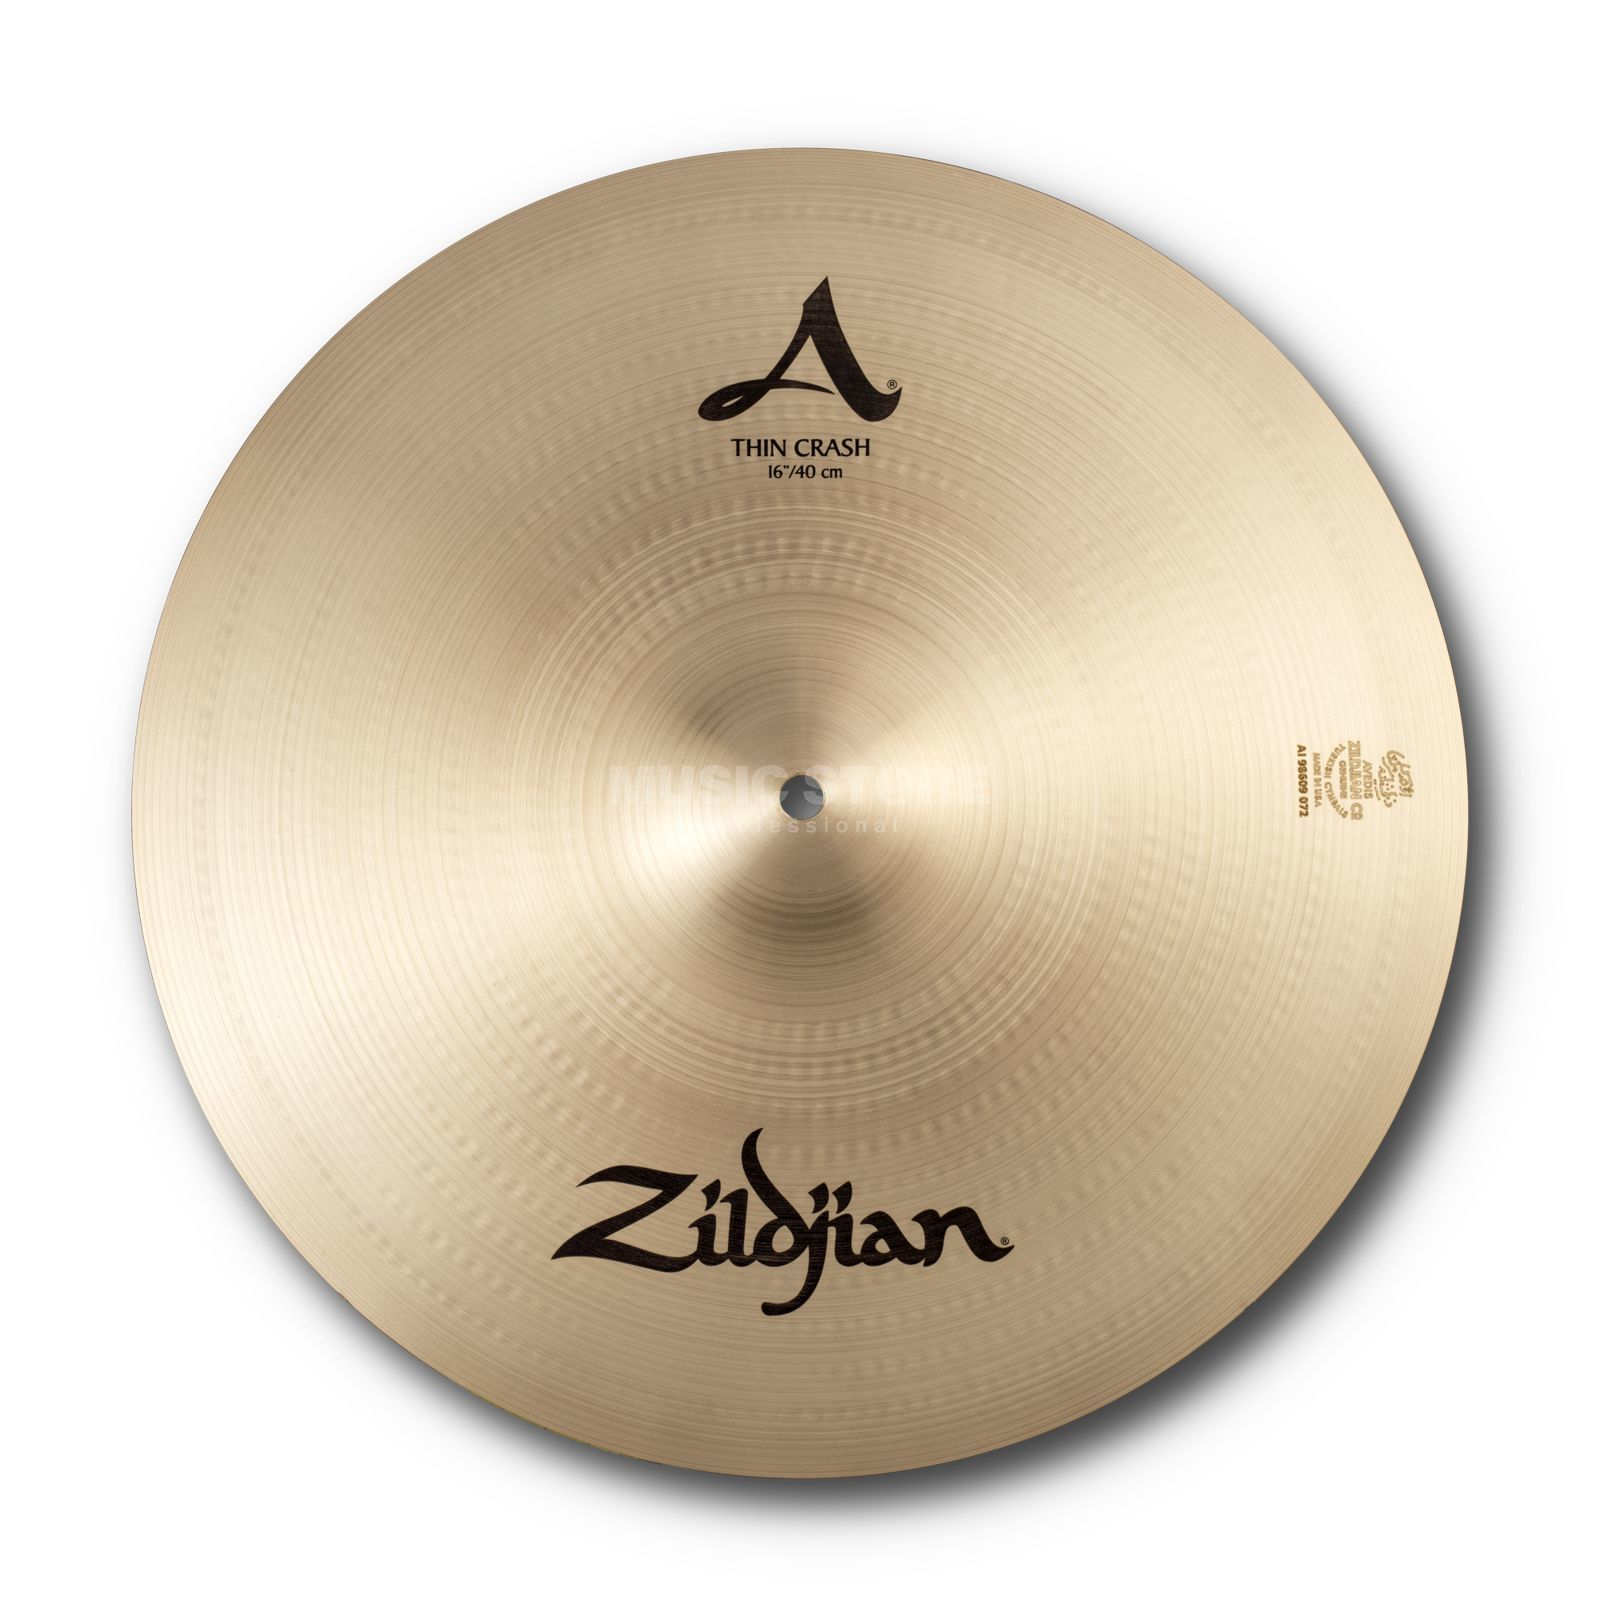 "Zildjian A' Zildjian Thin Crash 16"", Traditional Finish Image du produit"